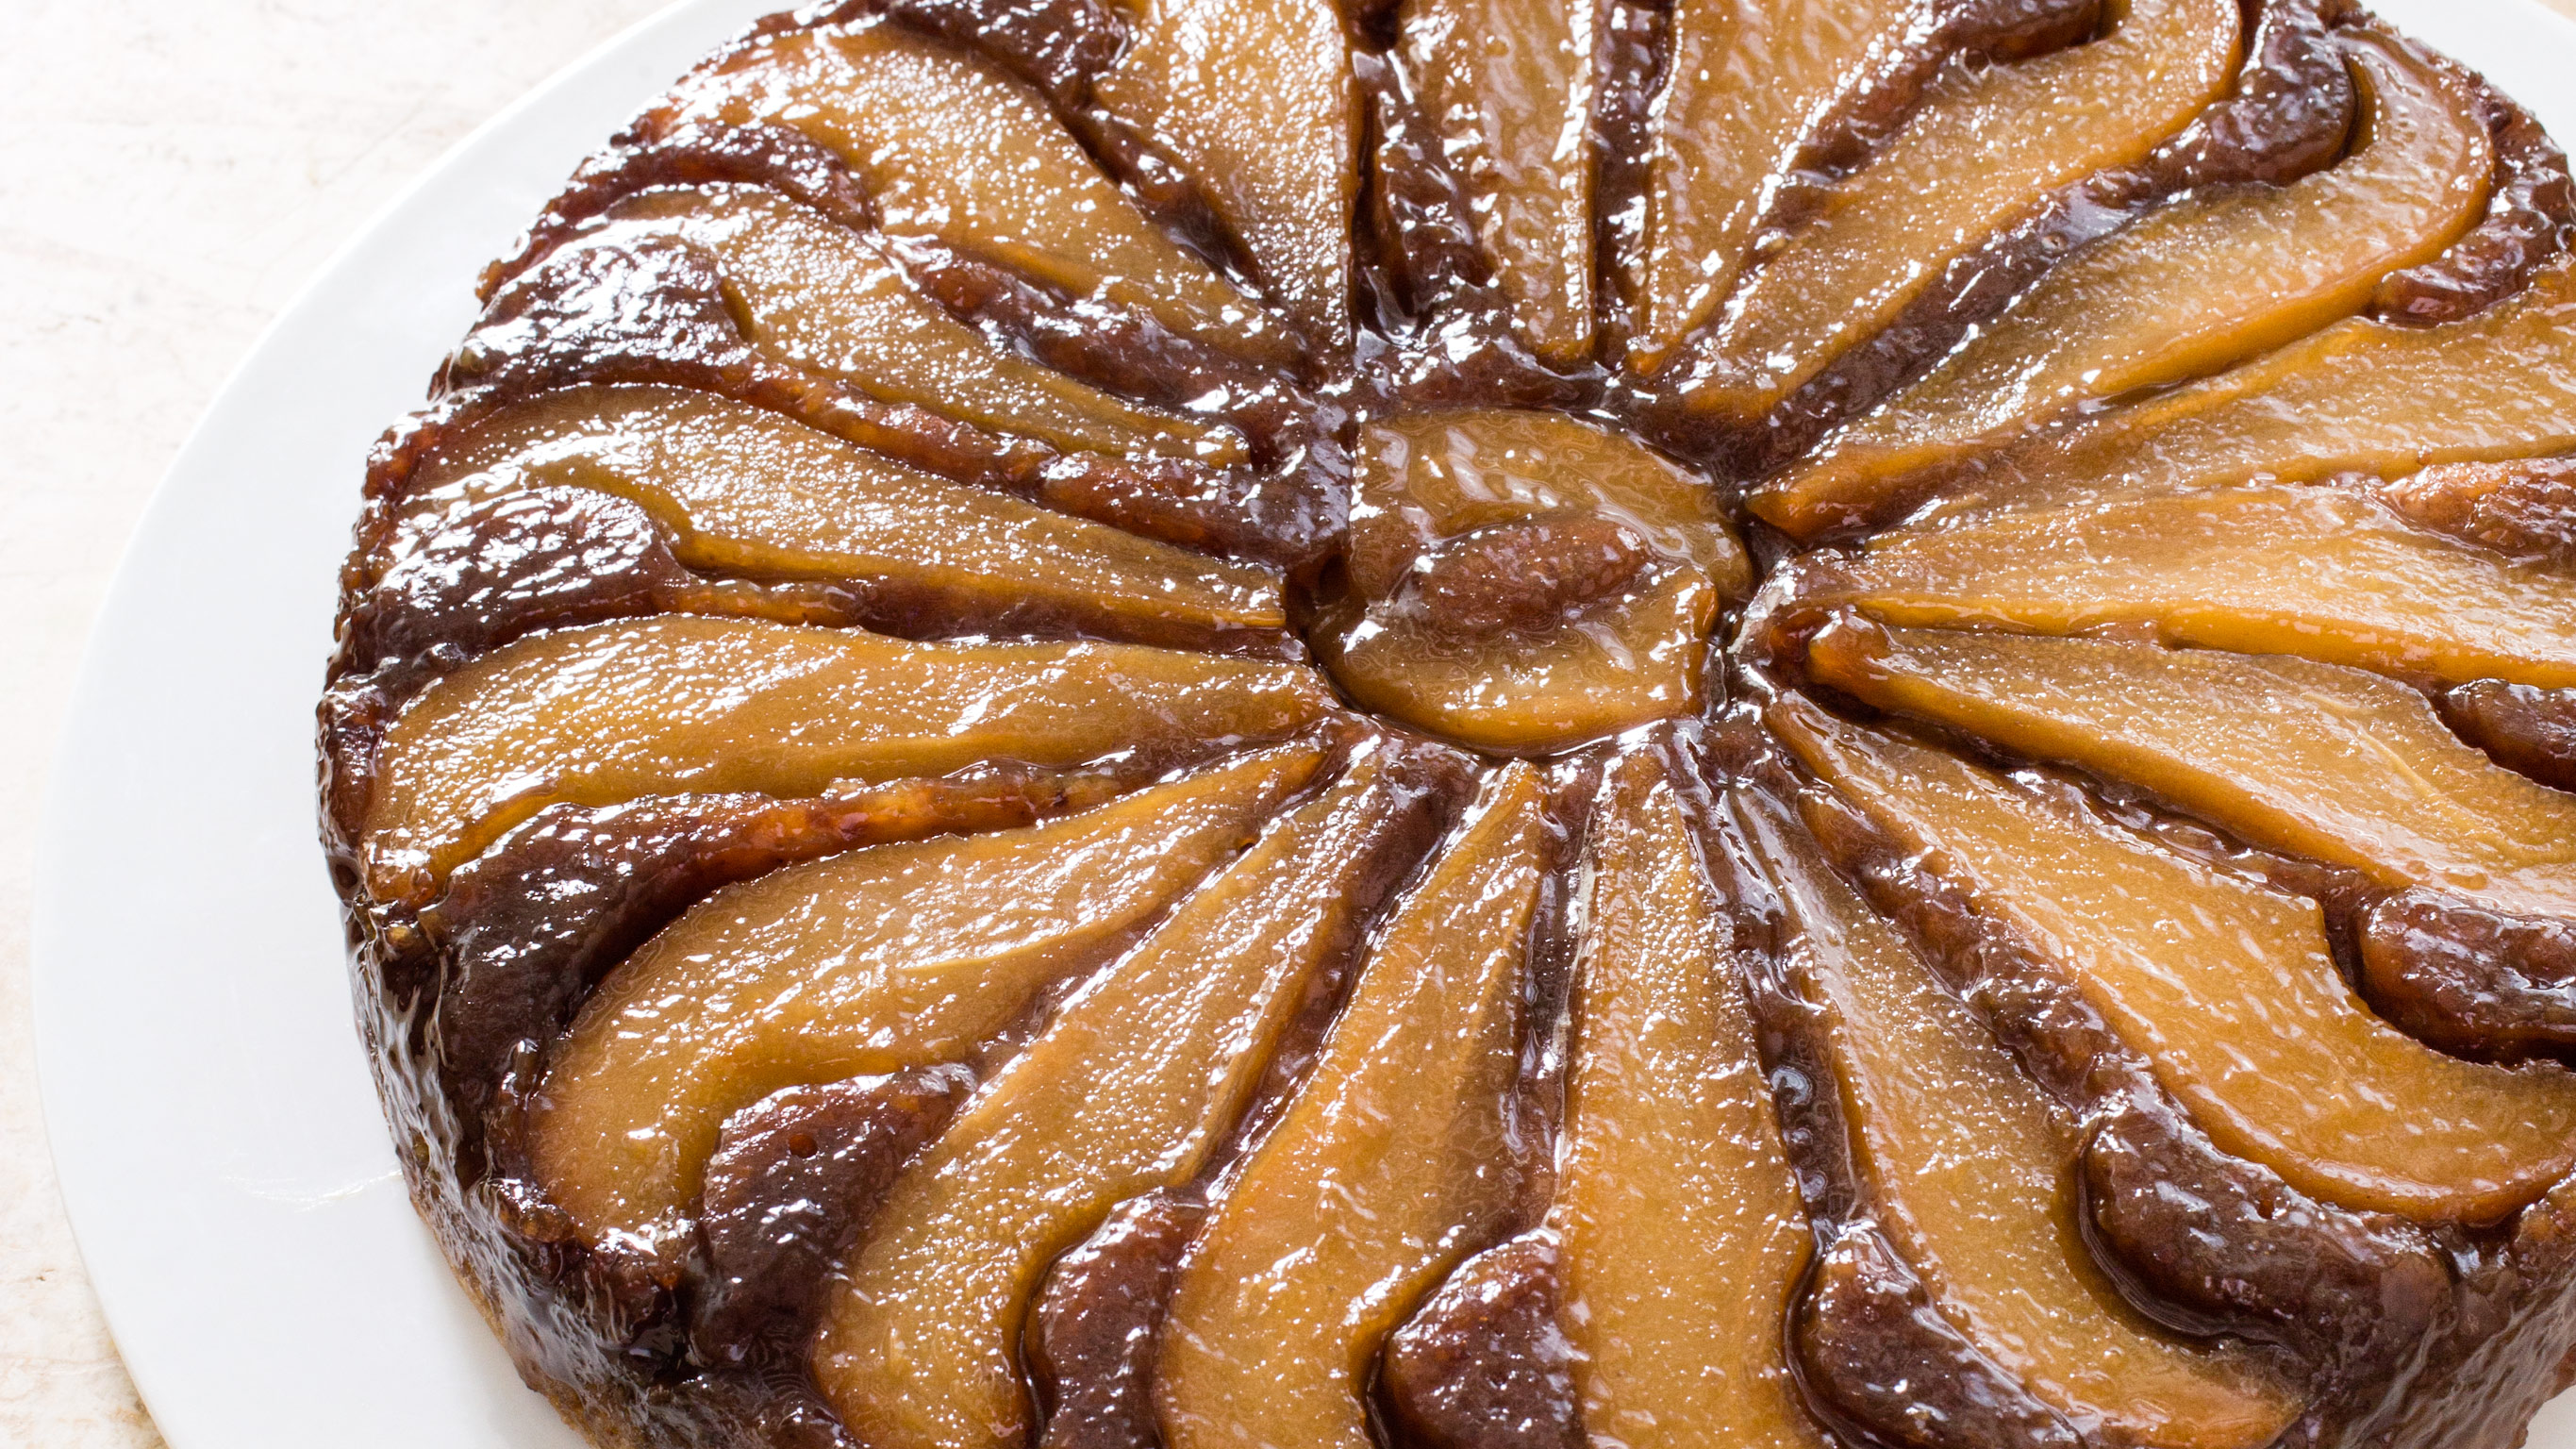 Küche Magazin Vkd Pear Walnut Upside Down Cake Cook S Illustrated